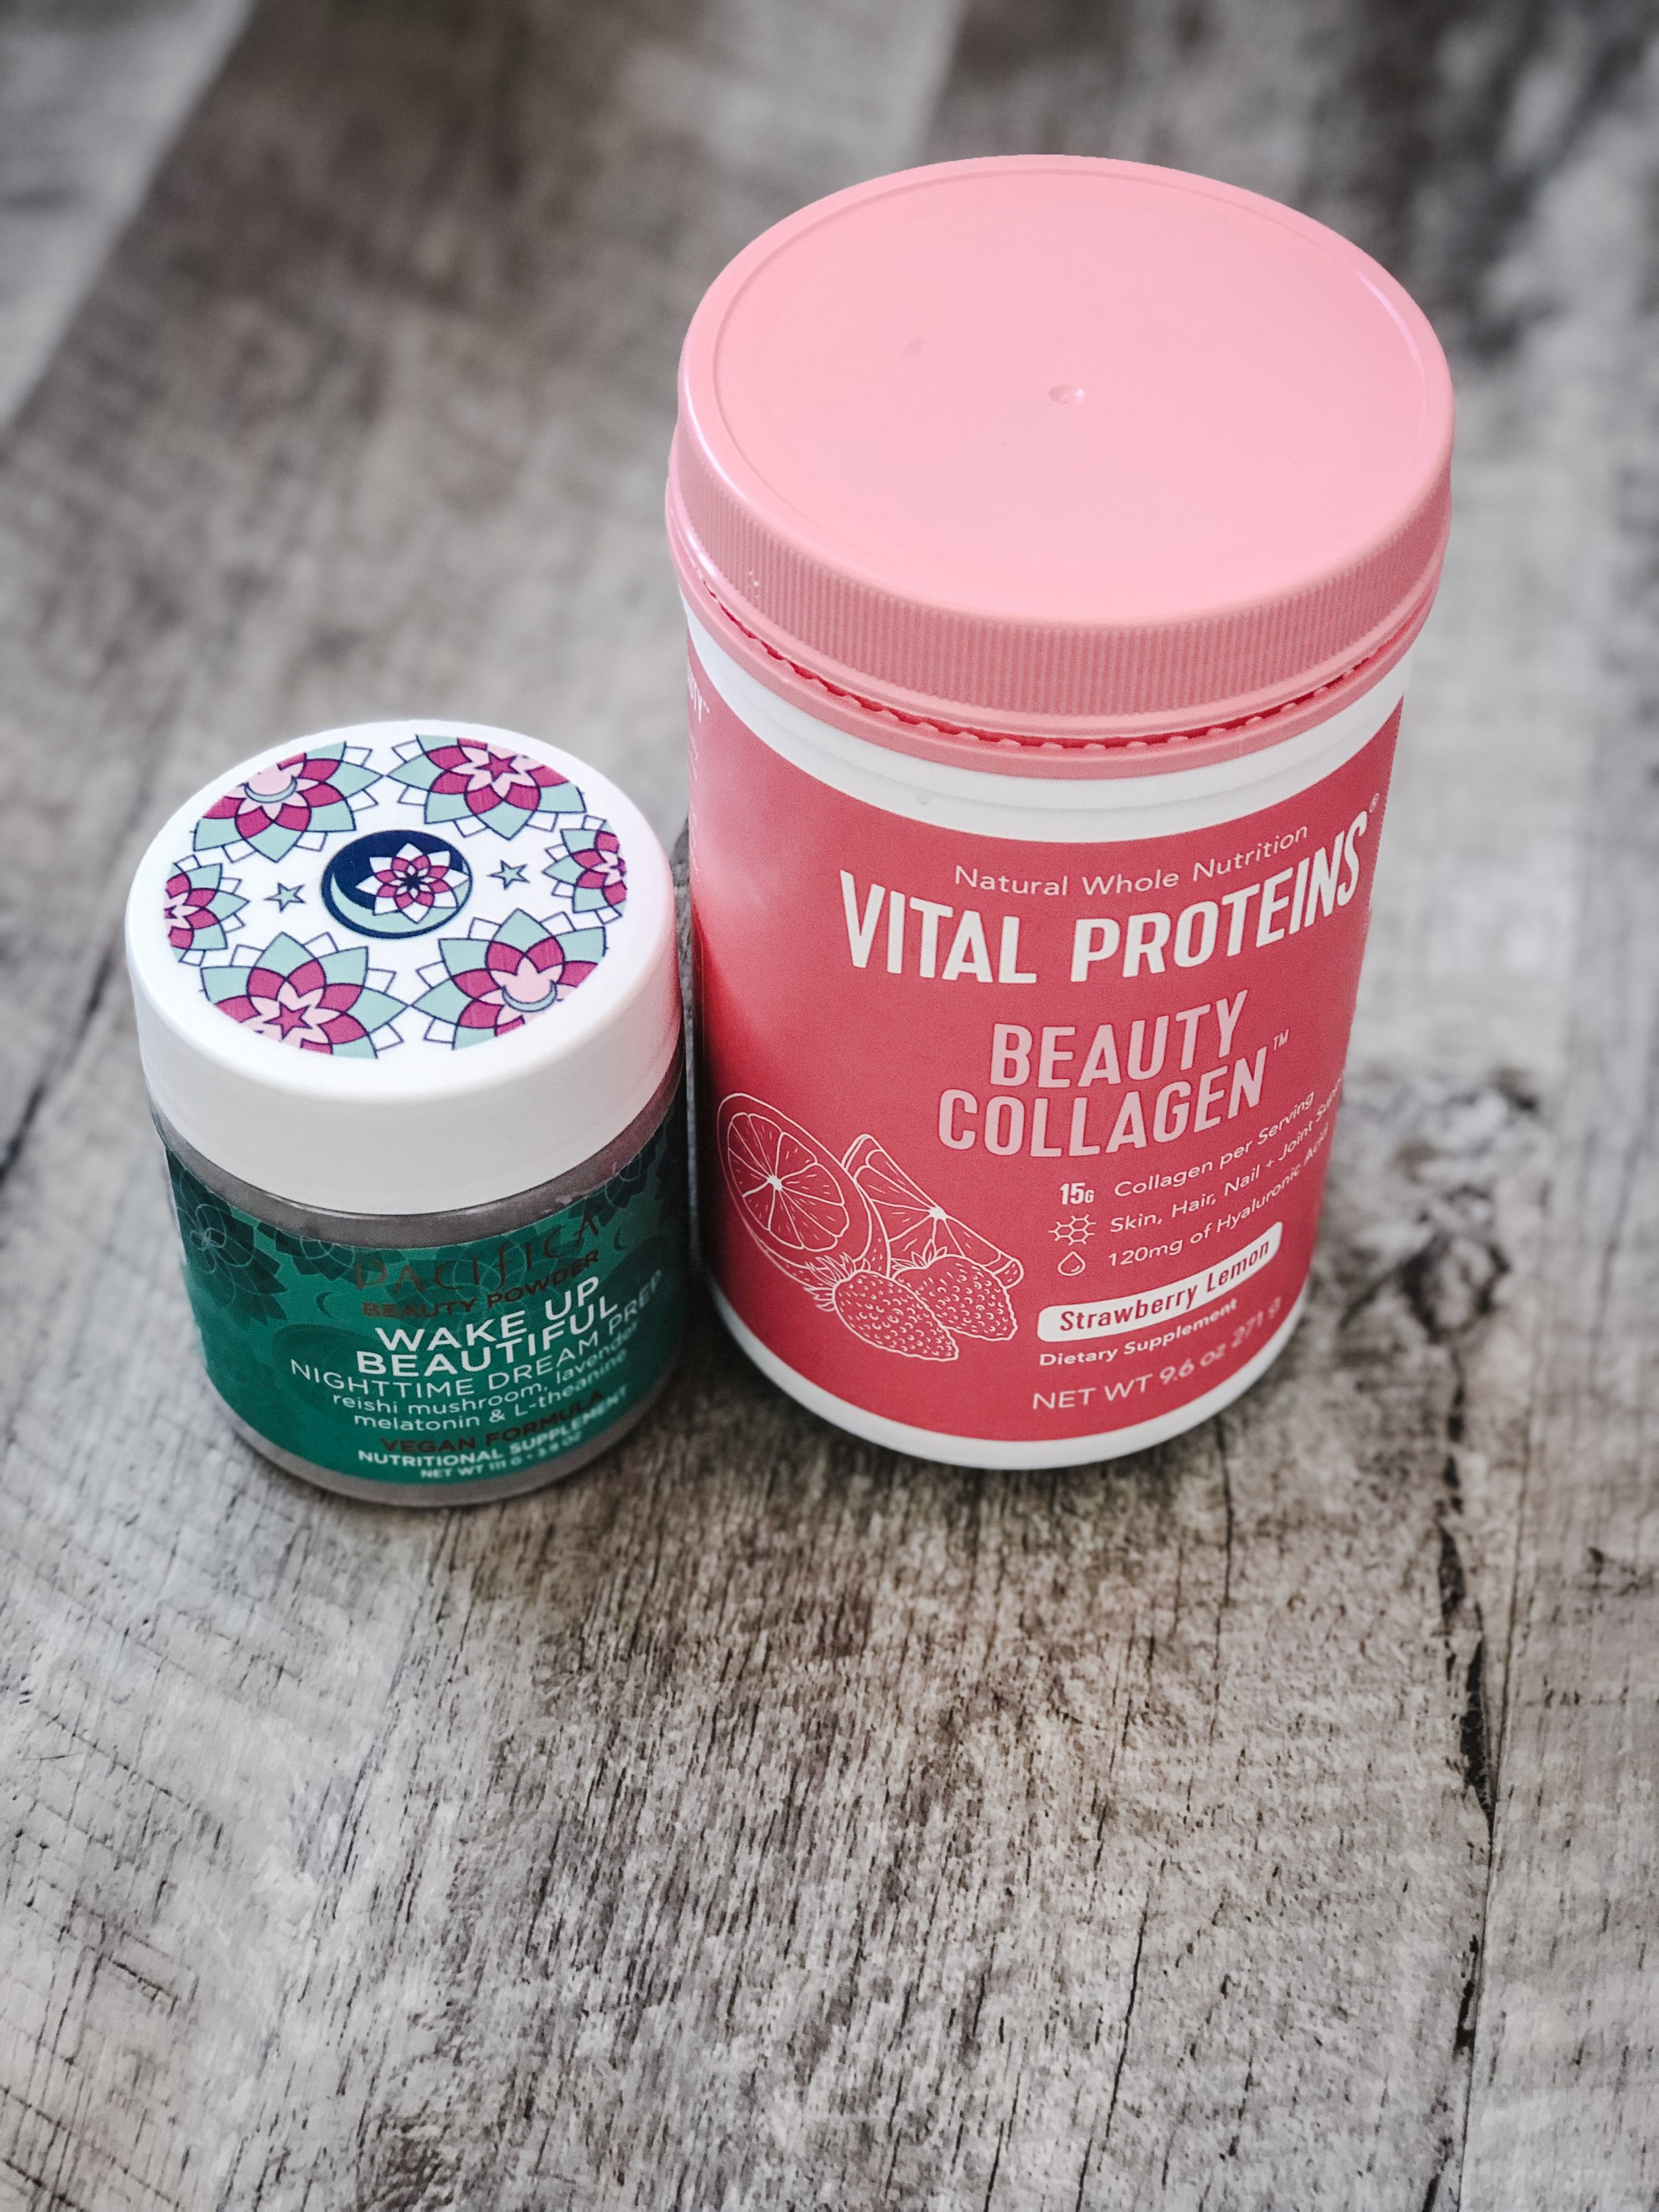 vital proteins beauty collagen, pacifica beauty, target finds, beauty powder, collagen, target does it again, kate killoran consulting, lifestyle blogger, target blogs, natural protein, self-care, self-love, health and wellness